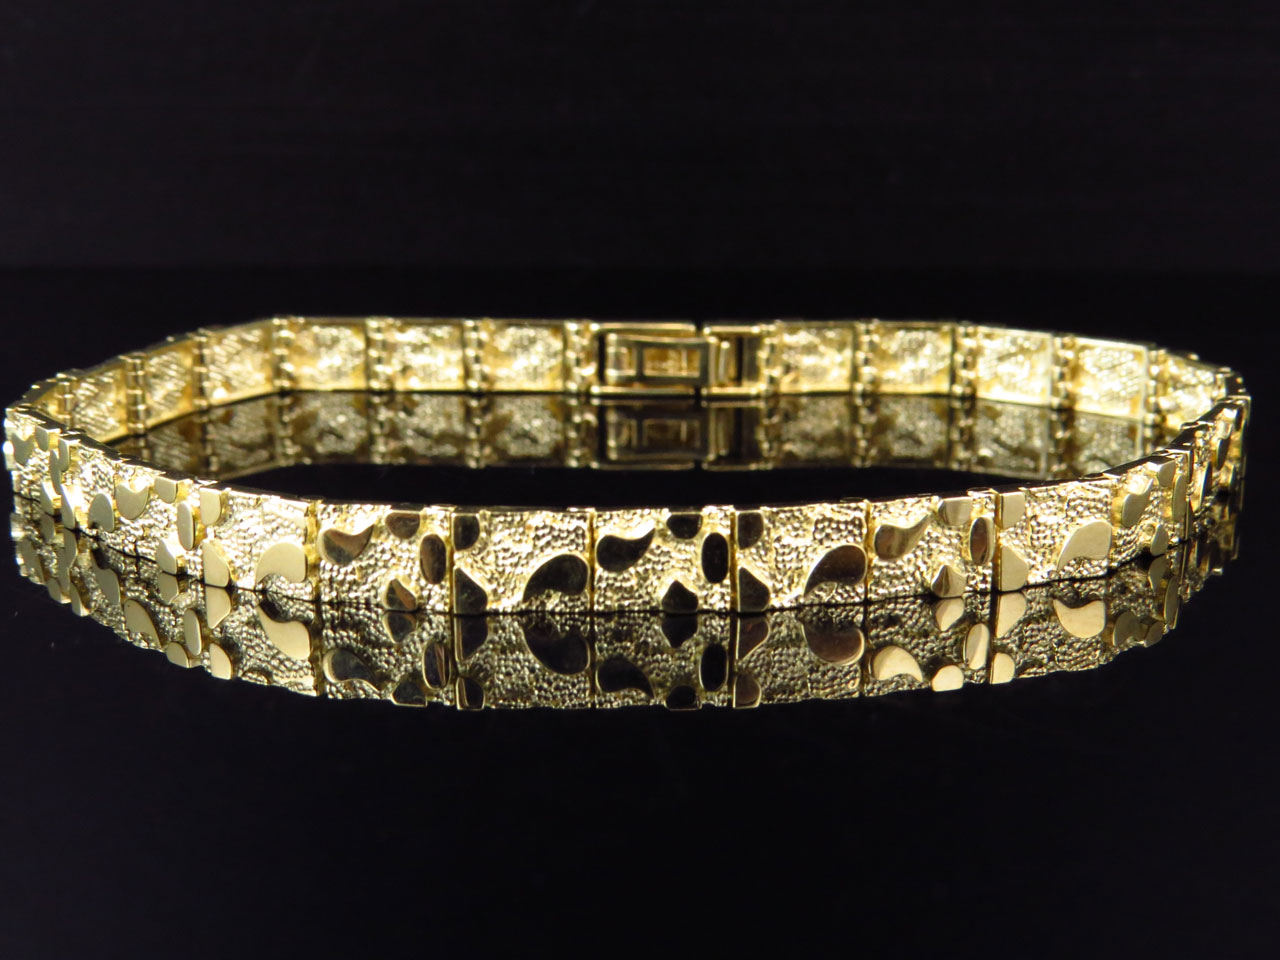 pave bracelet ct mainro ball ladies bangles gold diamond bangle